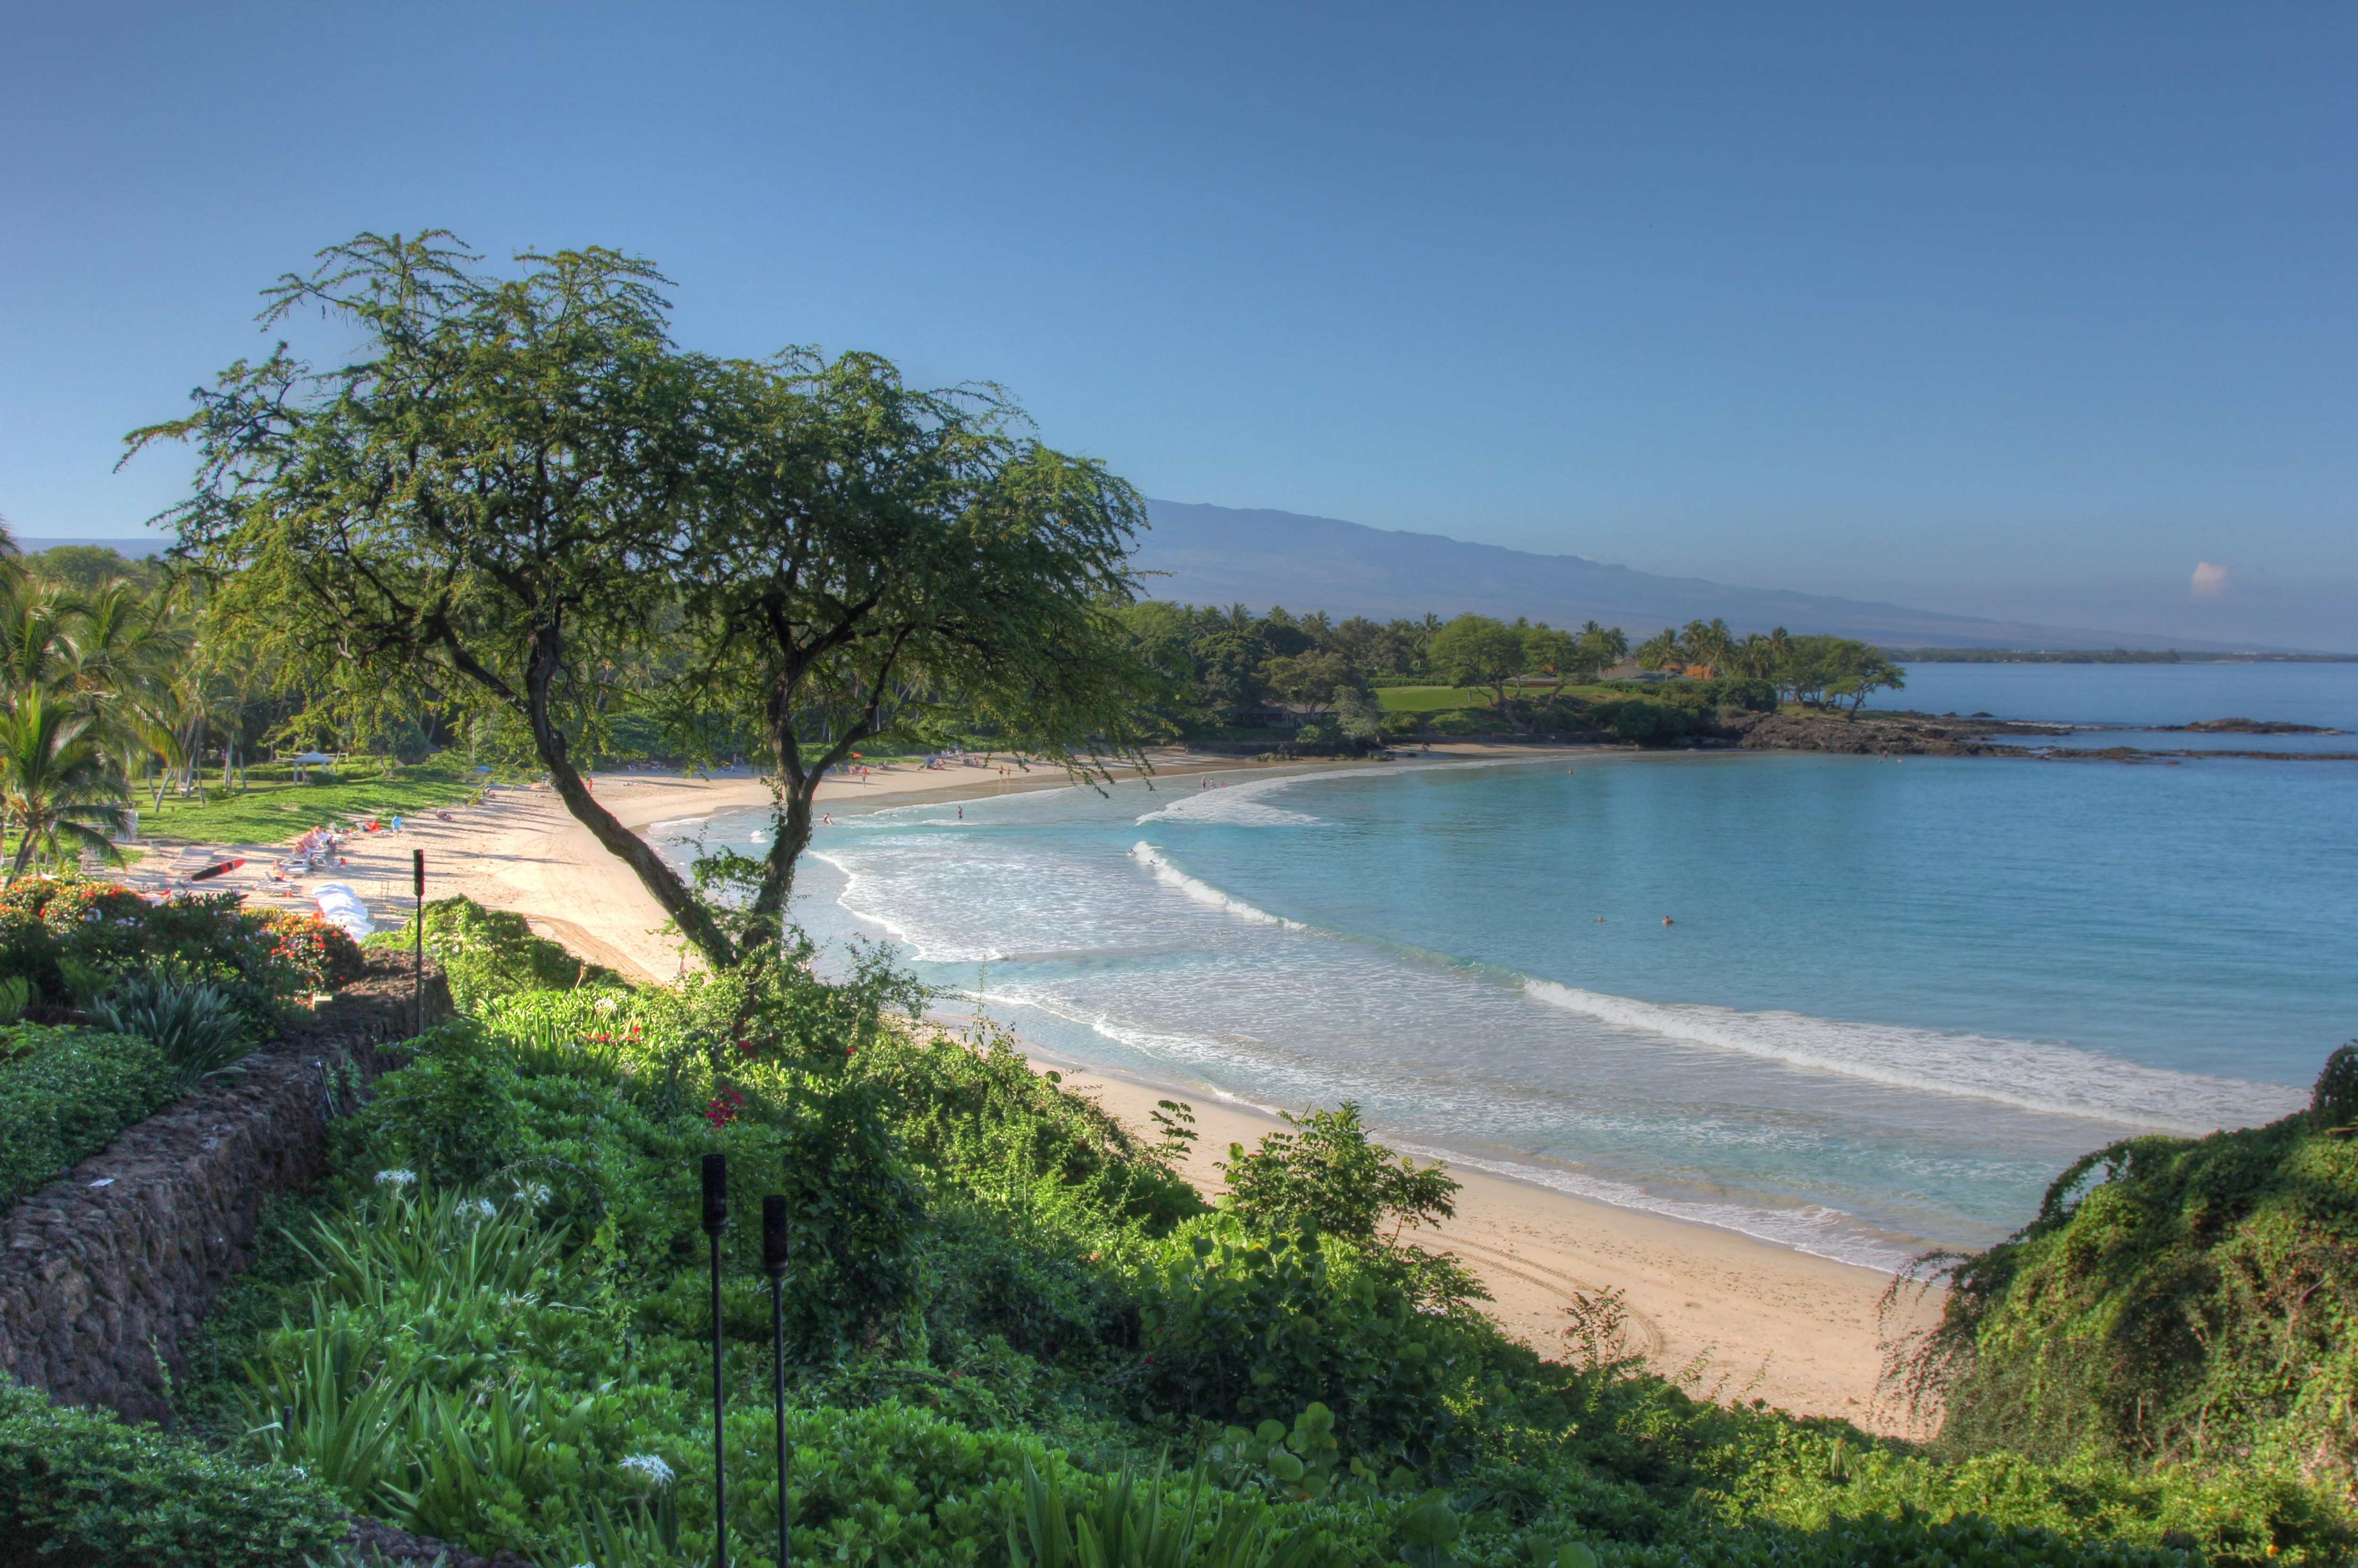 Nearby Mauna Kea Beach